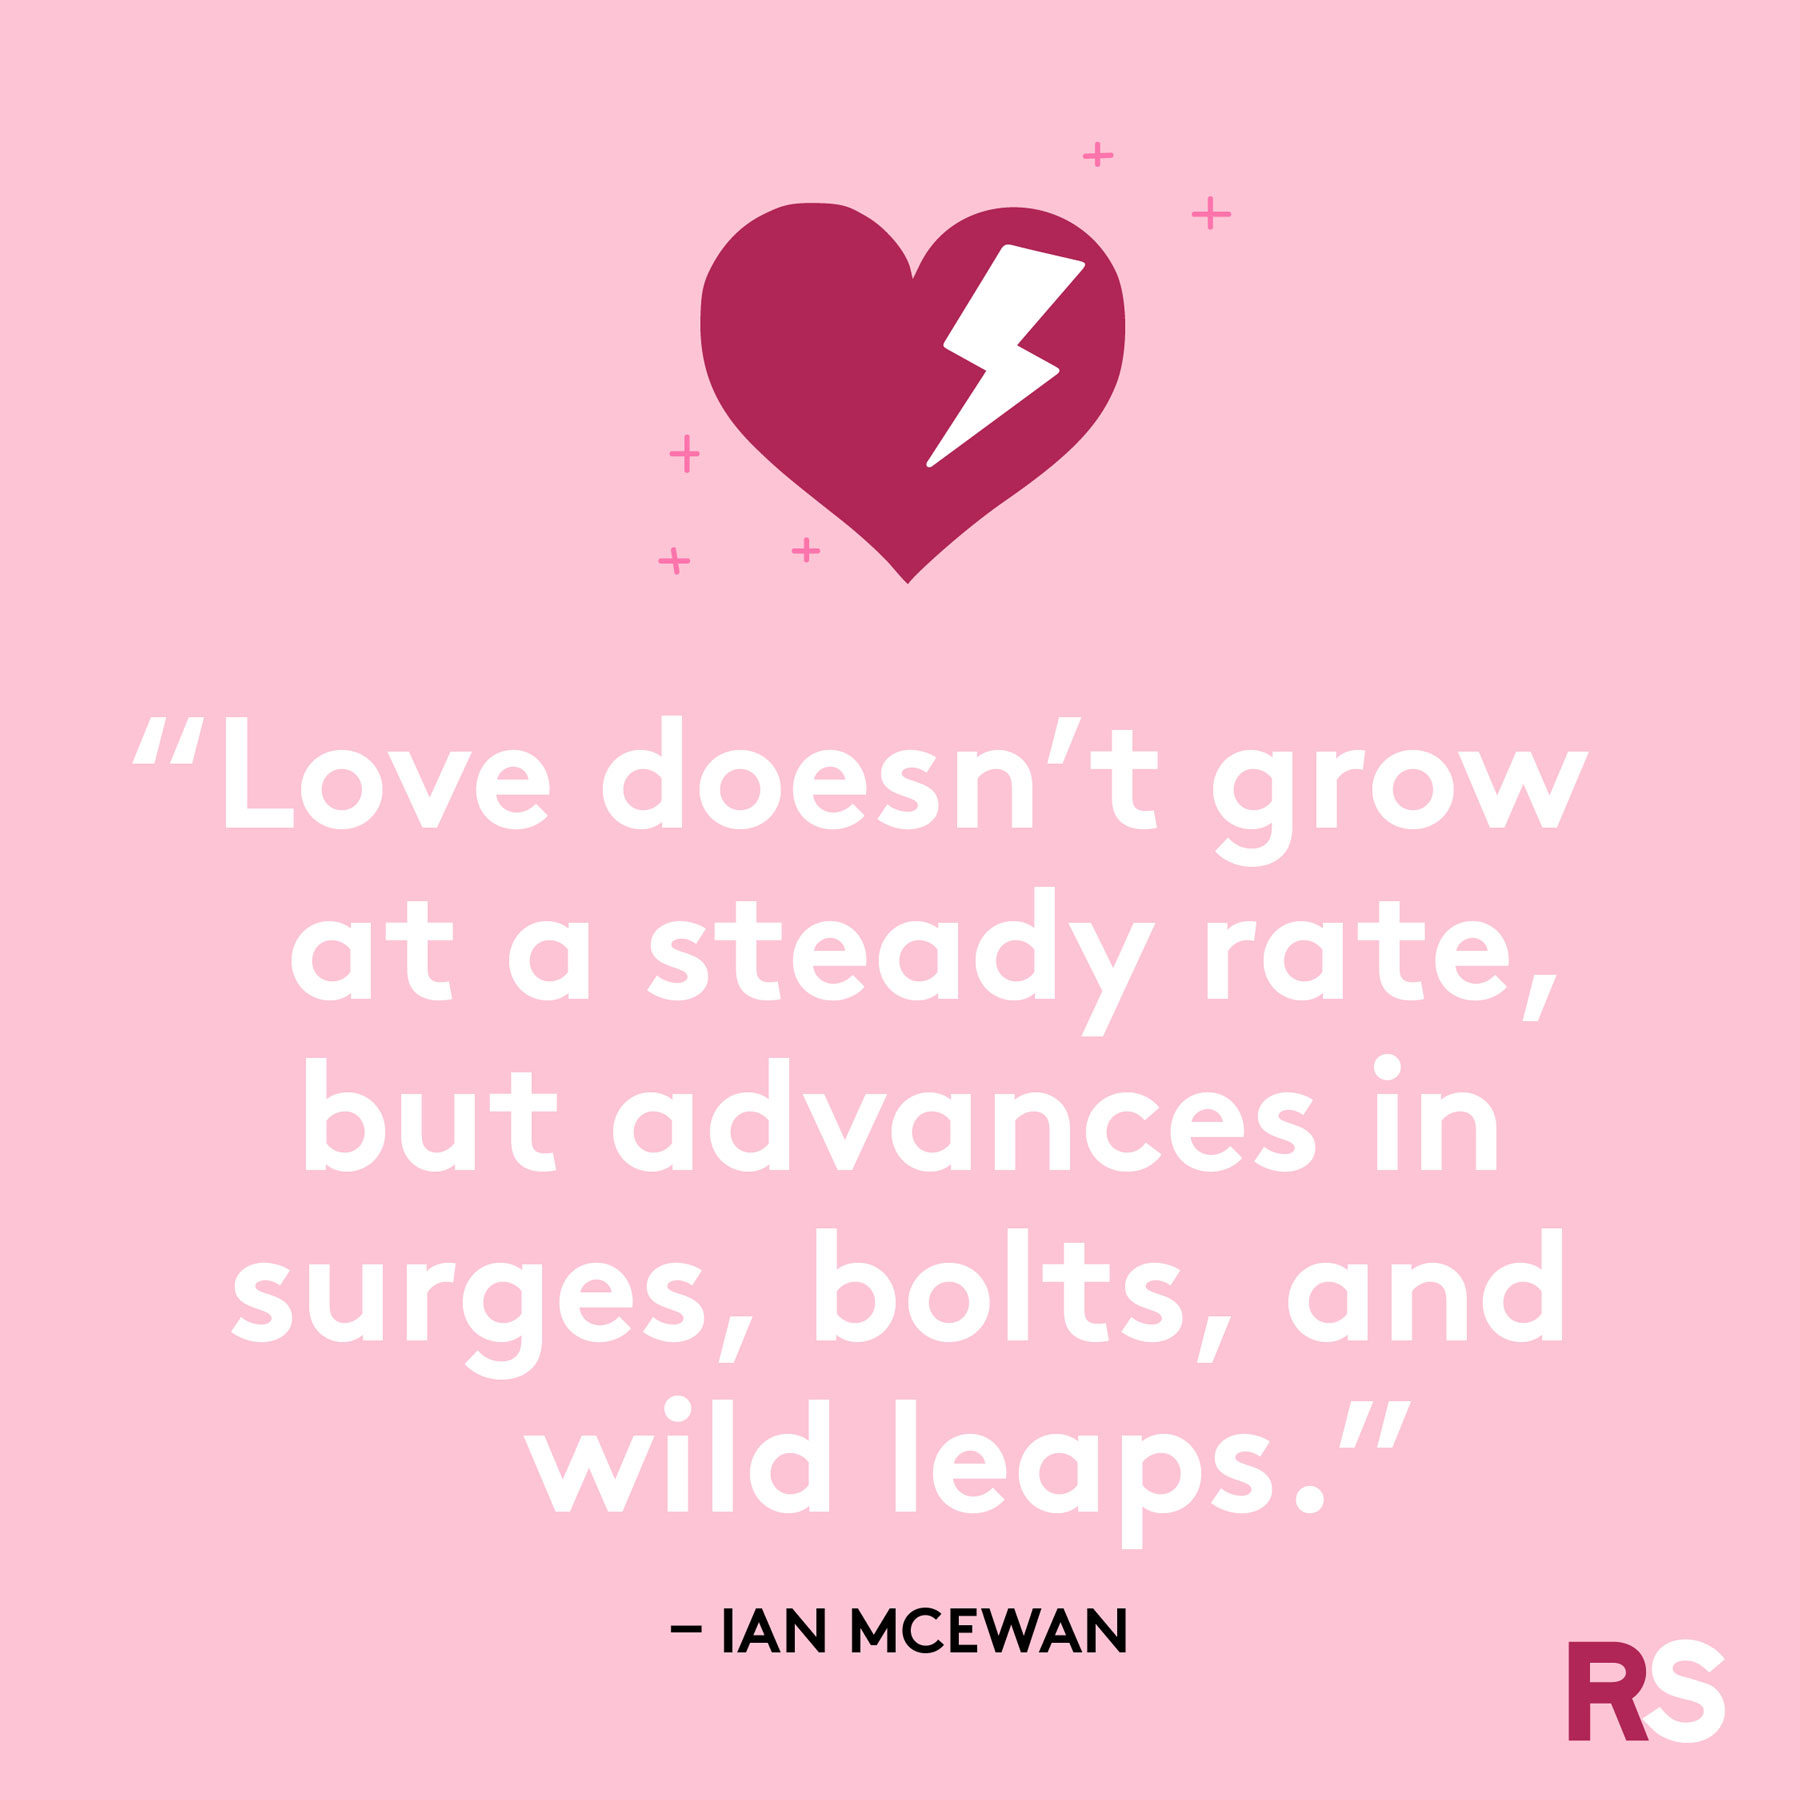 Love quotes, quotes about love - Ian McEwan